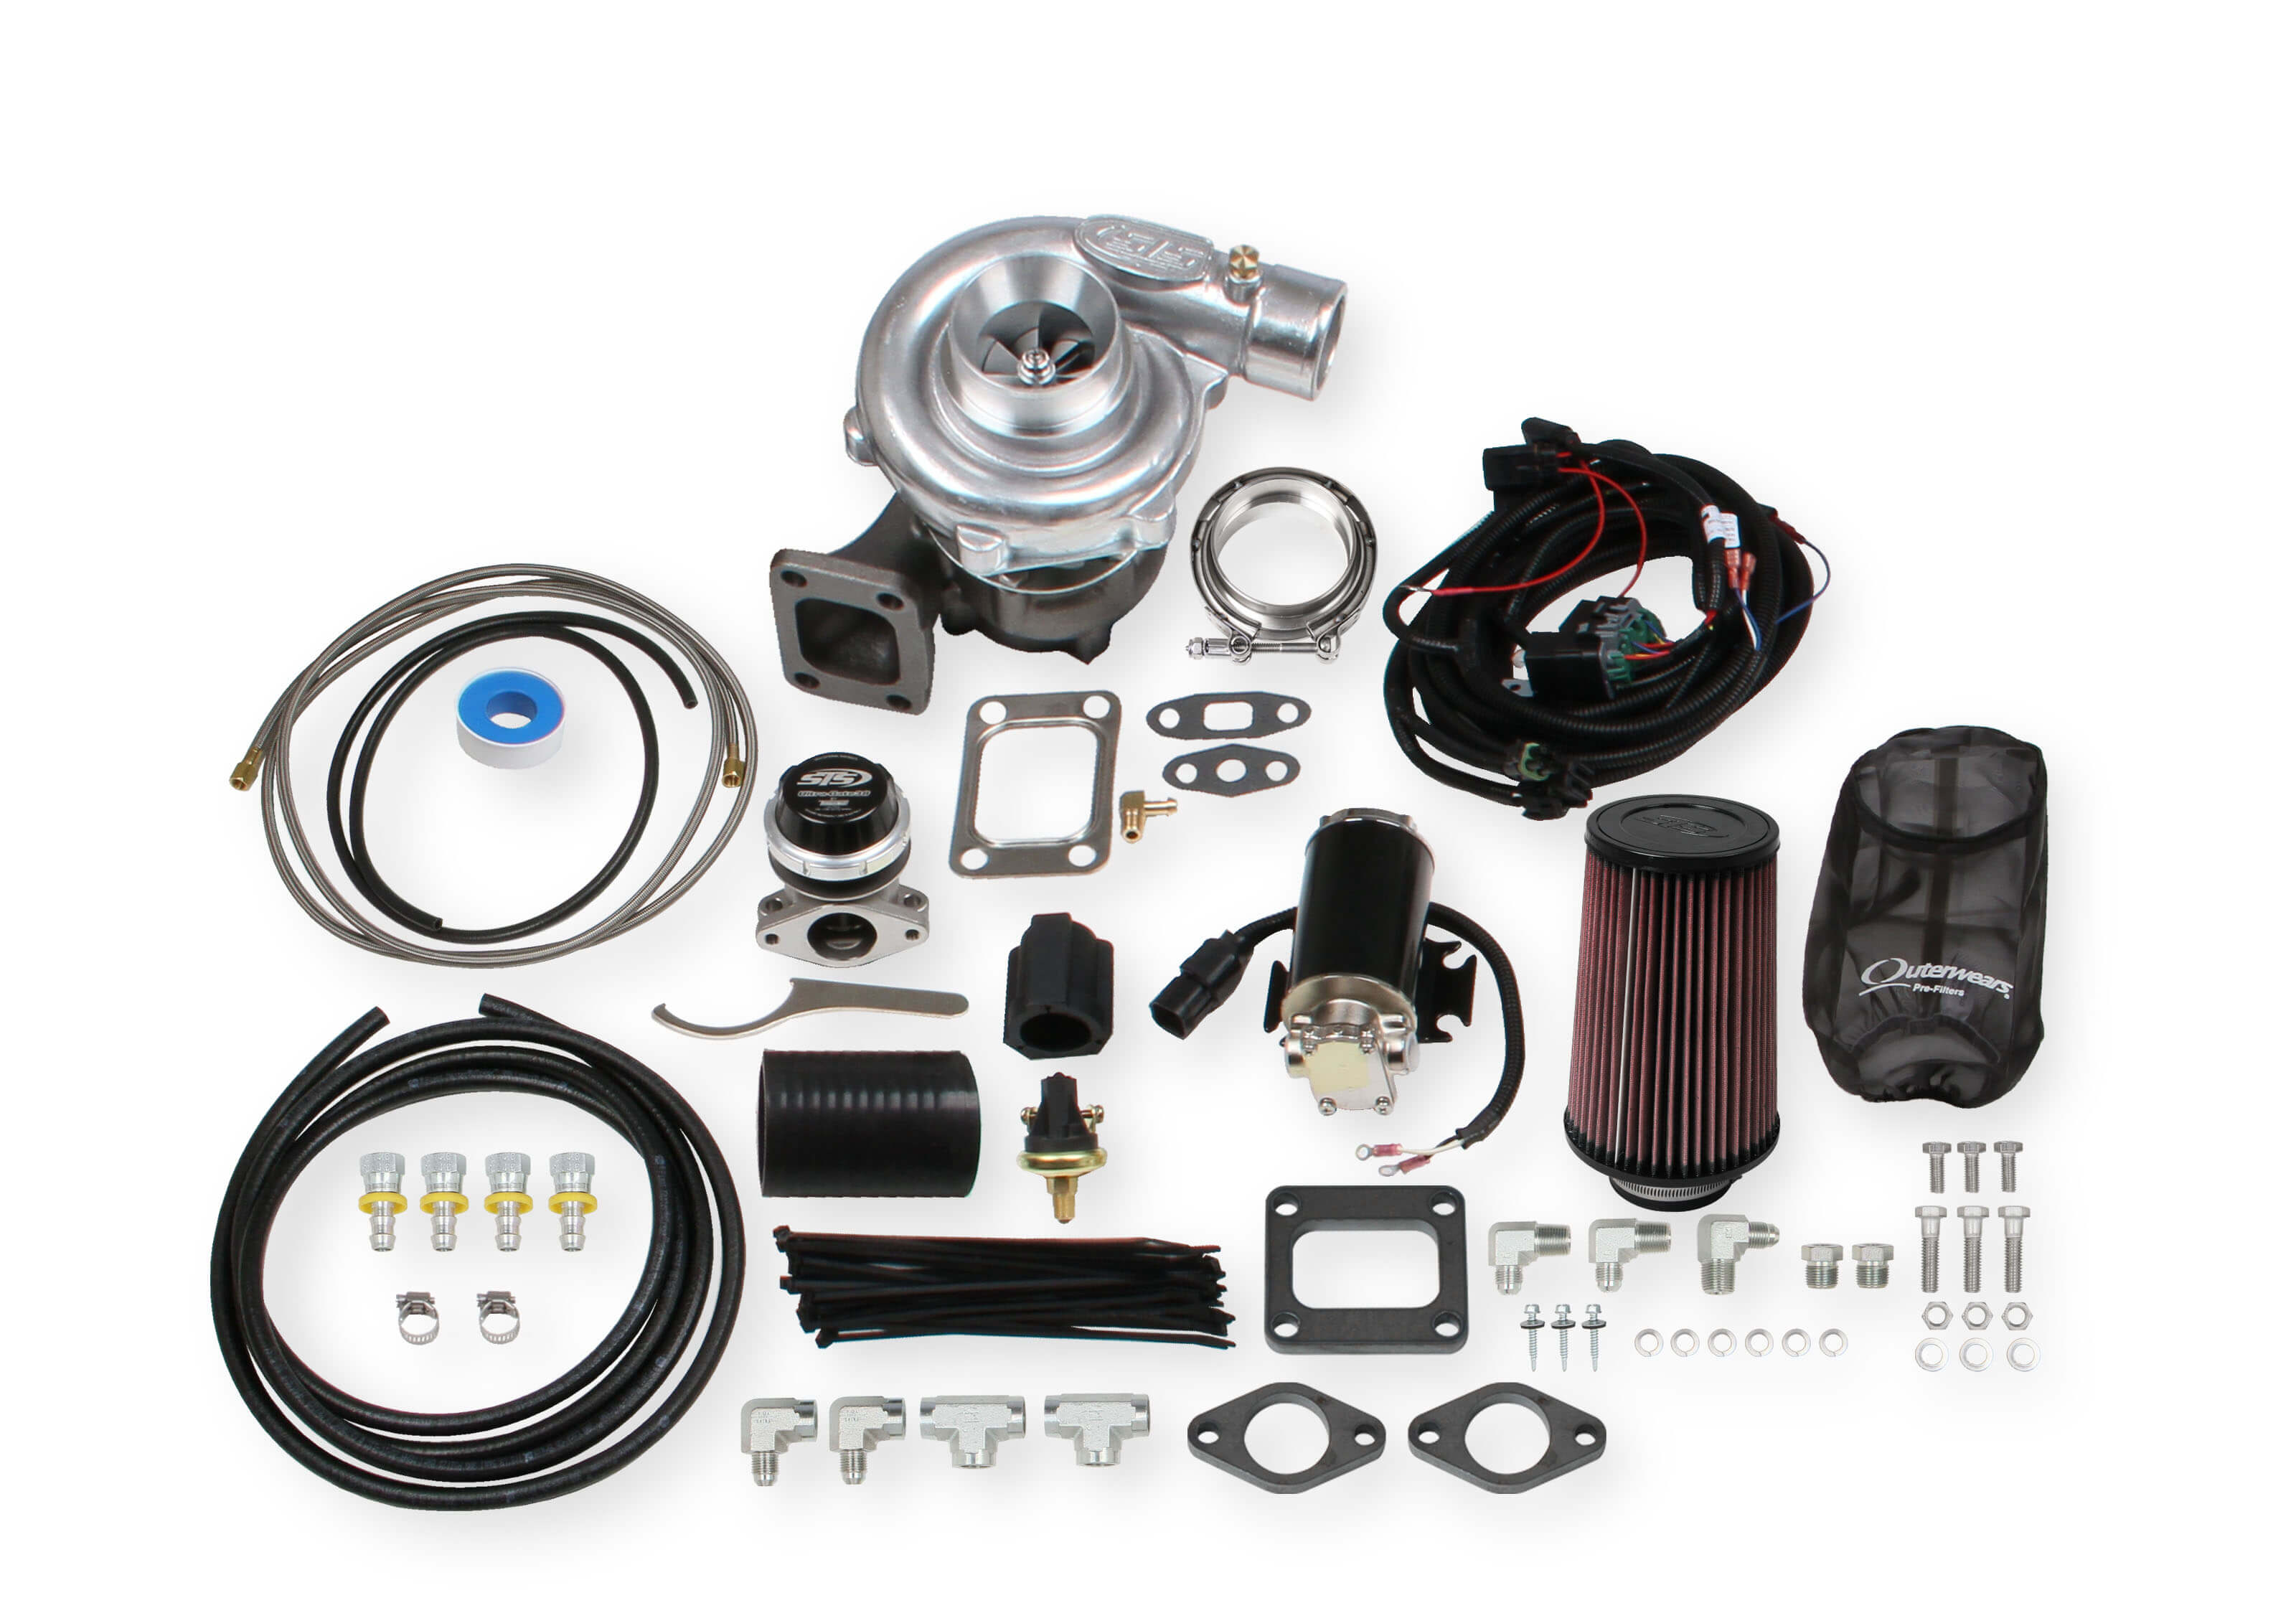 STS Turbo Remote Mounted Single Turbo Kit for 6.0-7.0 liter engines